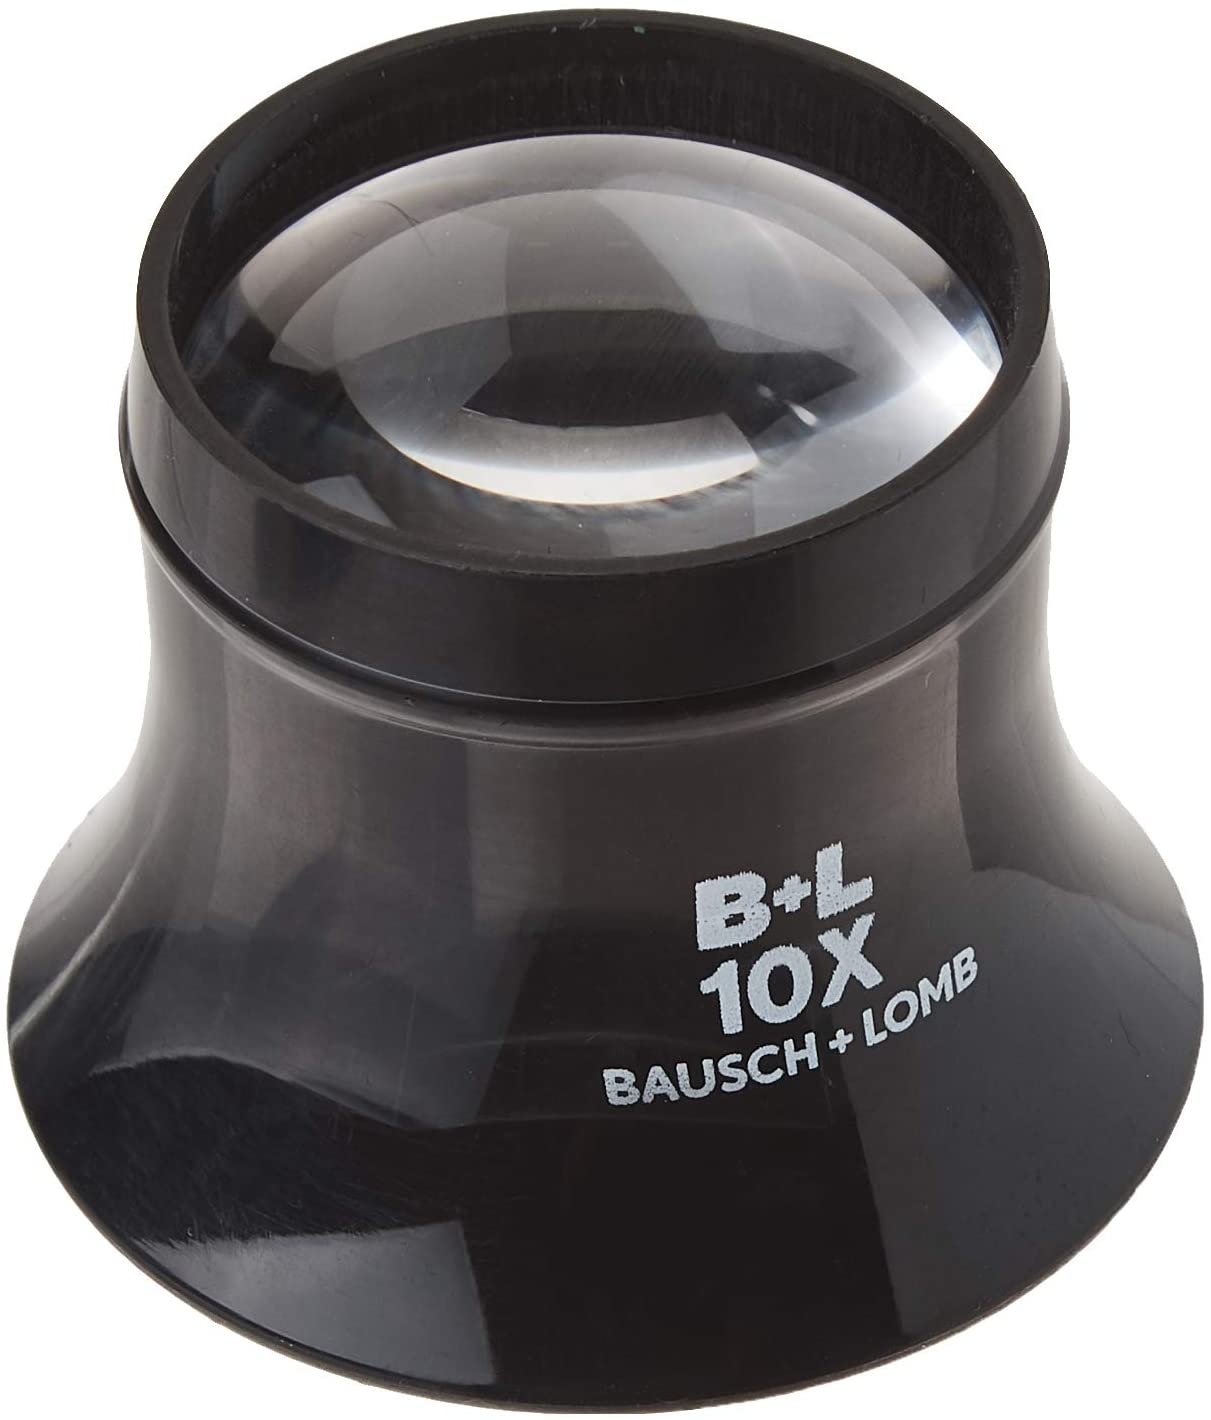 Bausch & Lomb Watchmaker Loupe